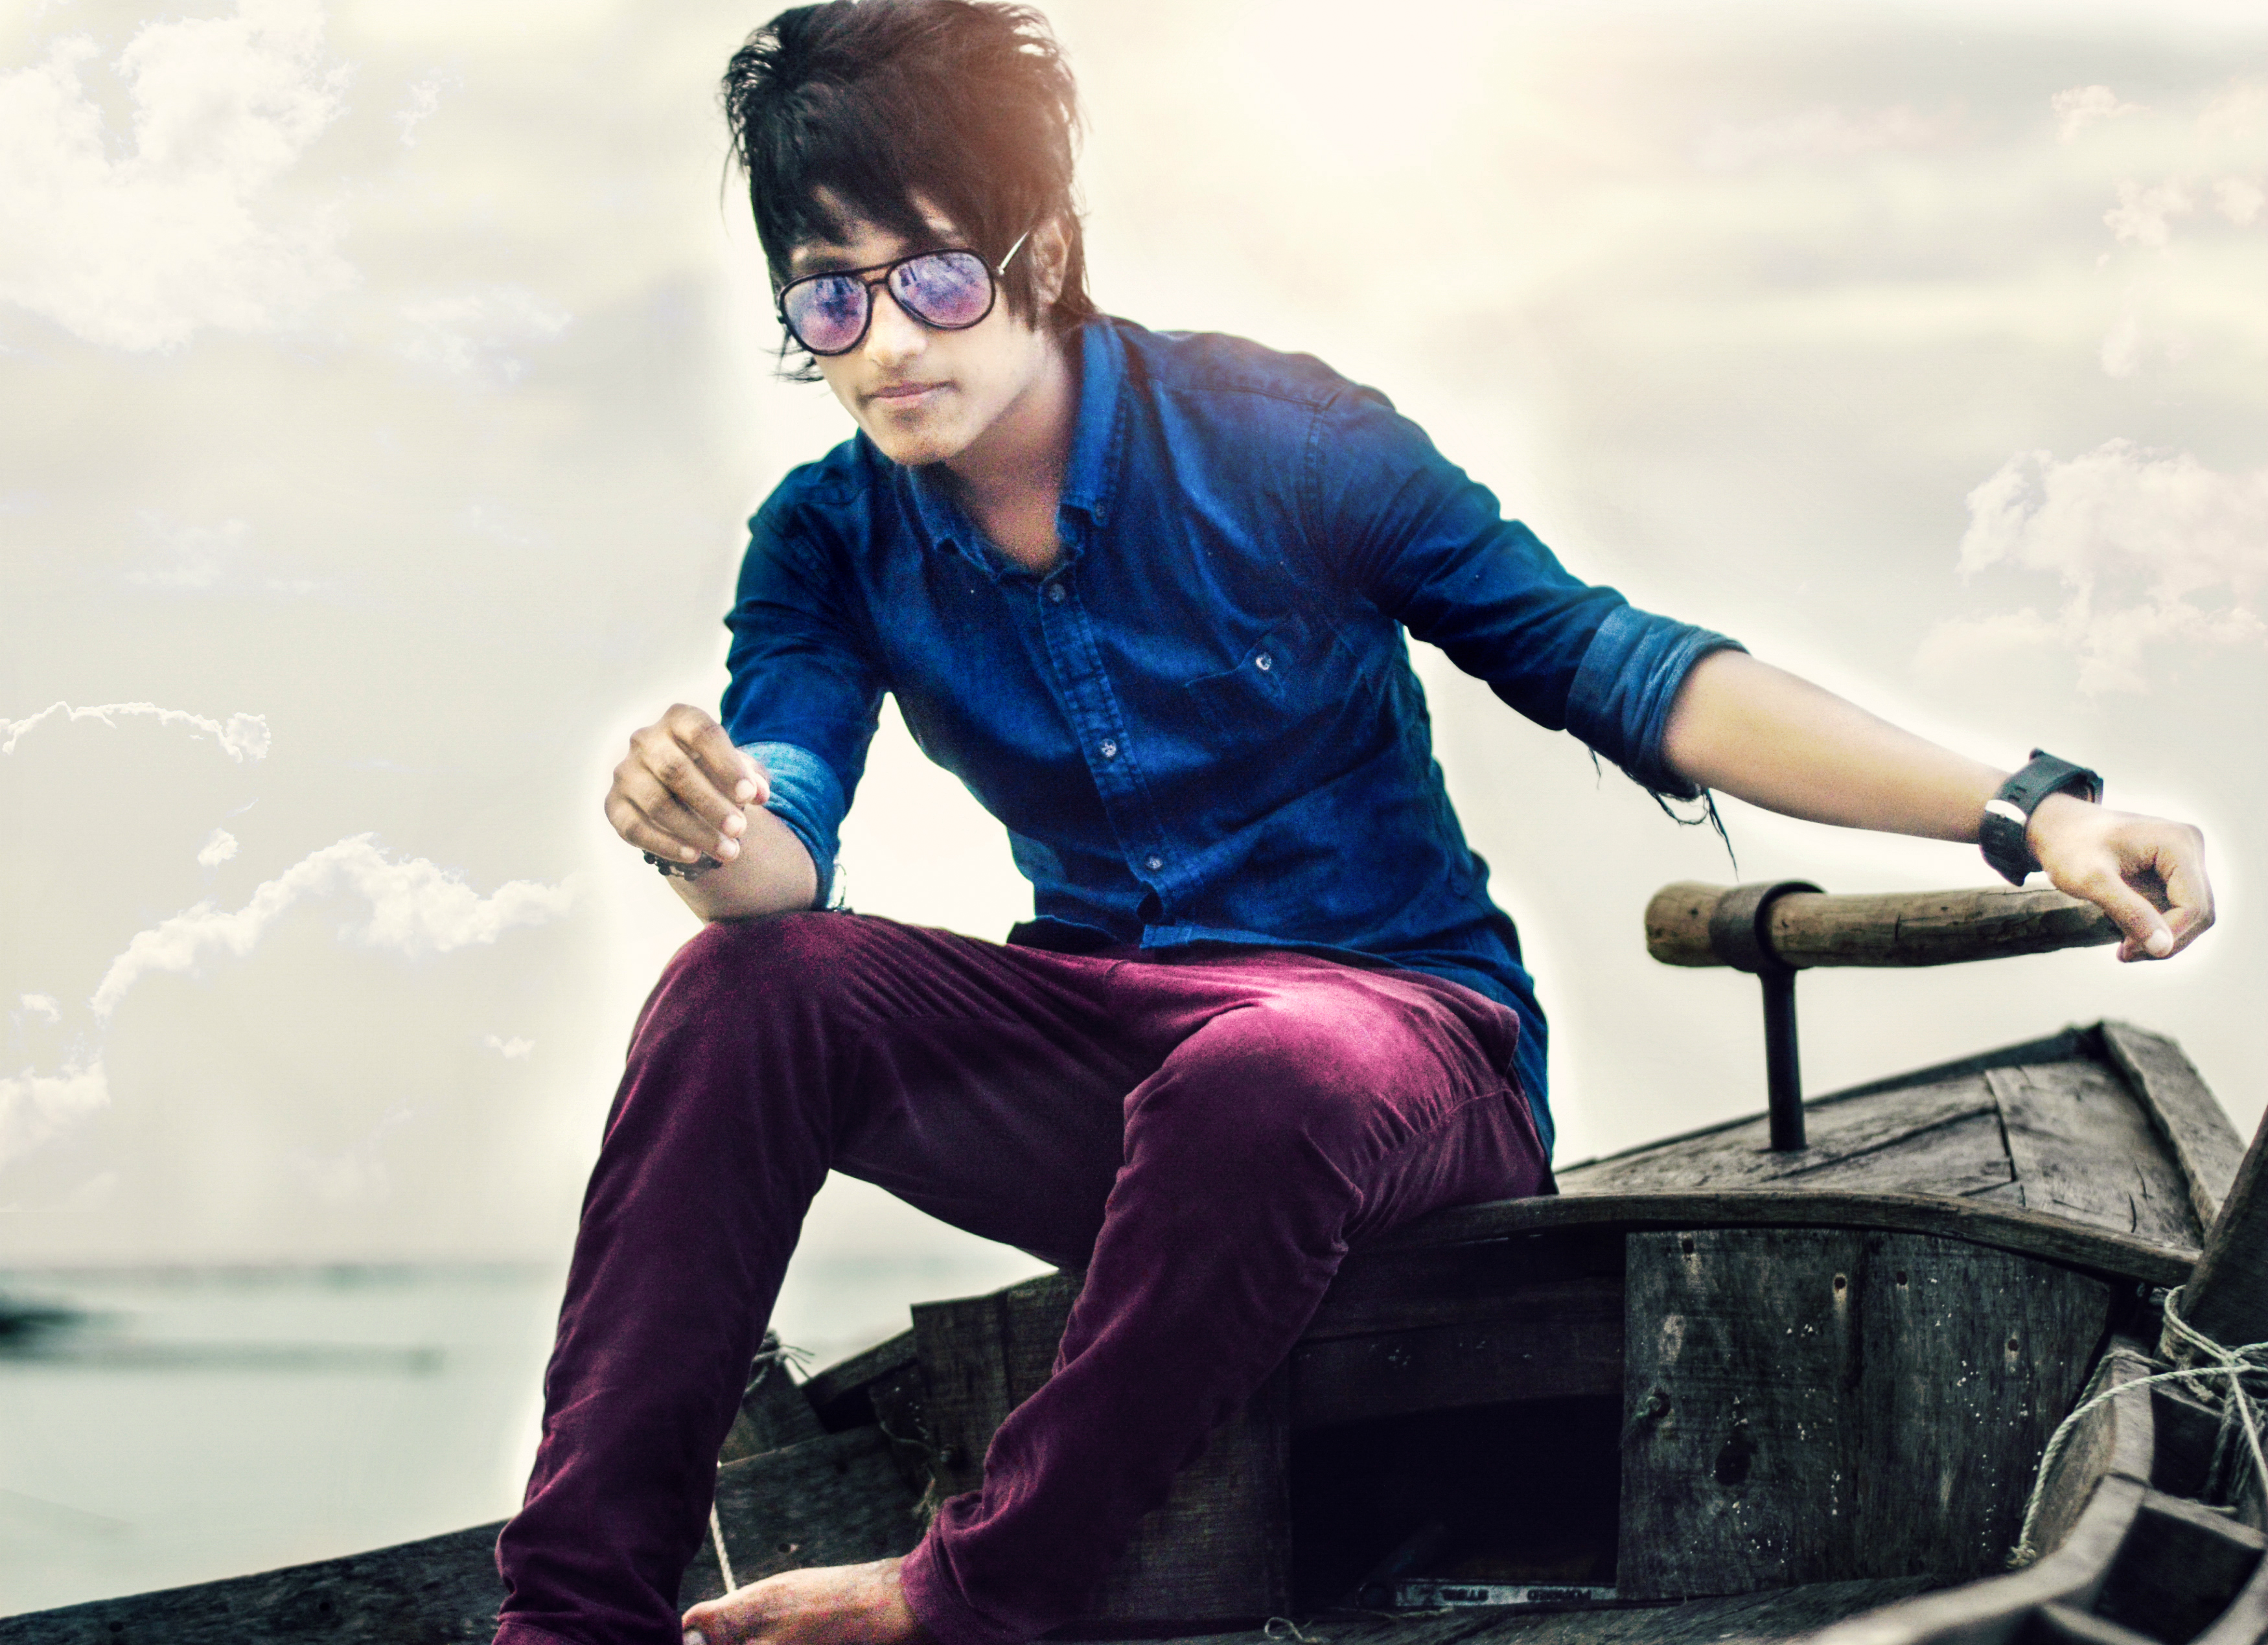 Emo Boys Images Emo Boy Bangladesh Hd Wallpaper And Background